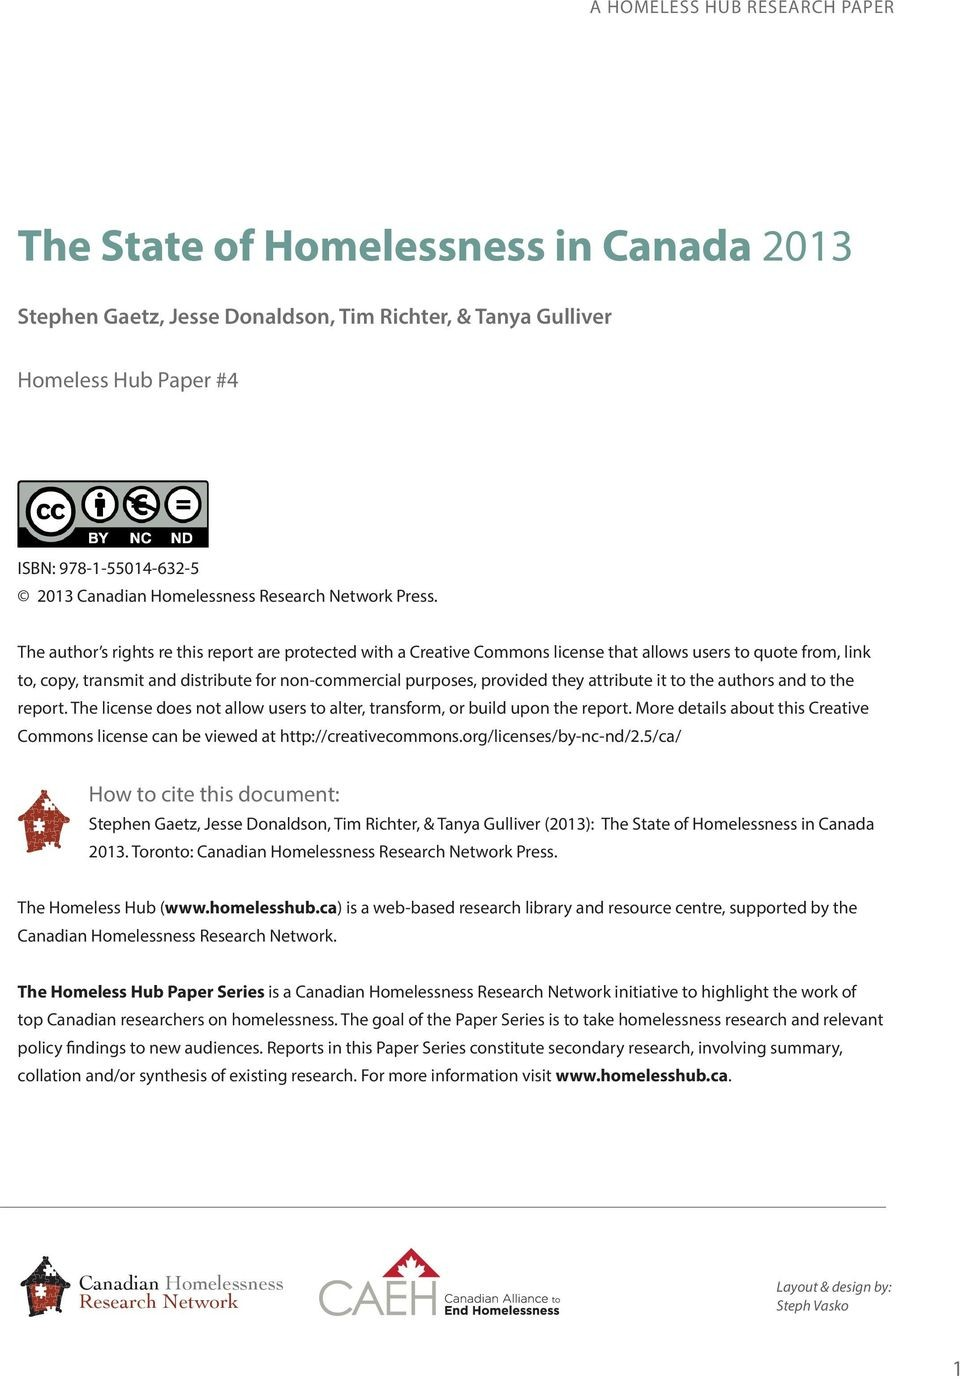 003 Page 2 Research Paper On Singular Homelessness Article In The United States 960